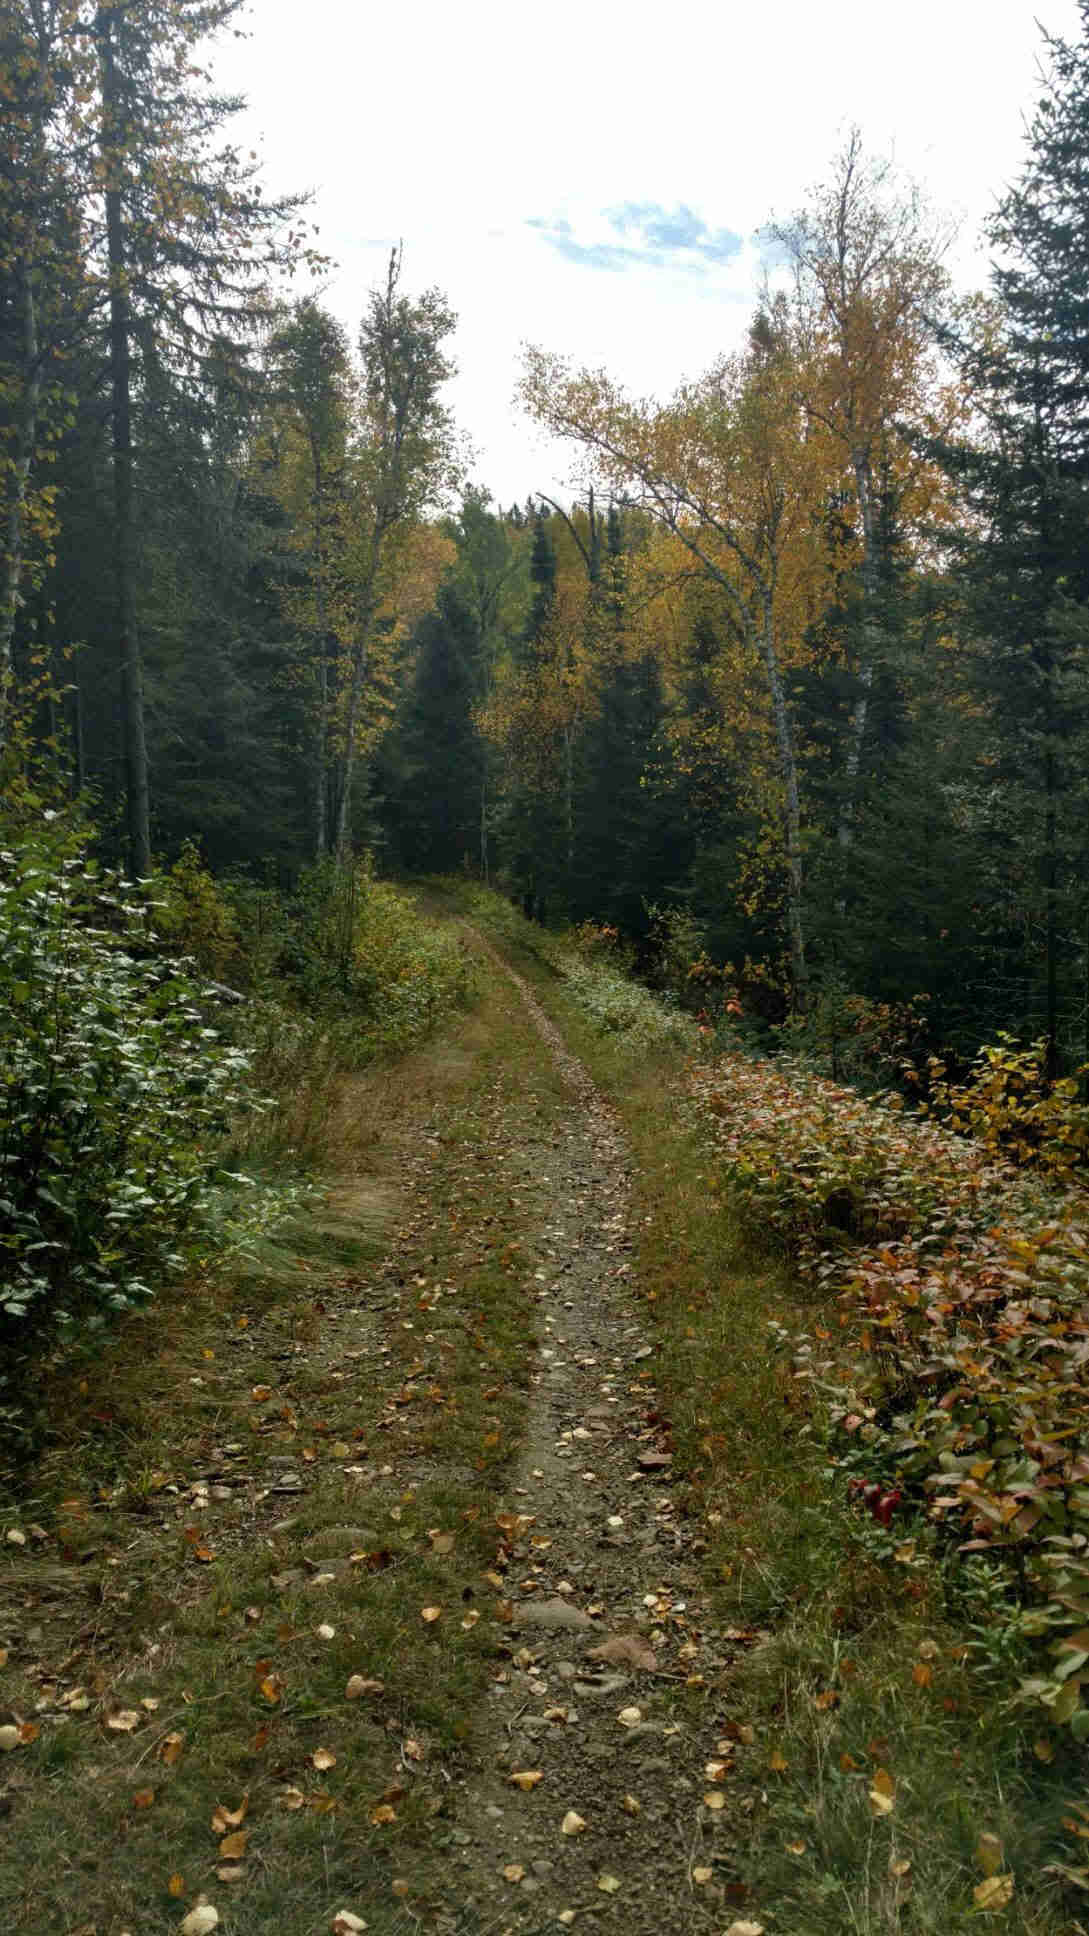 View of narrow grass trail leading into the trees